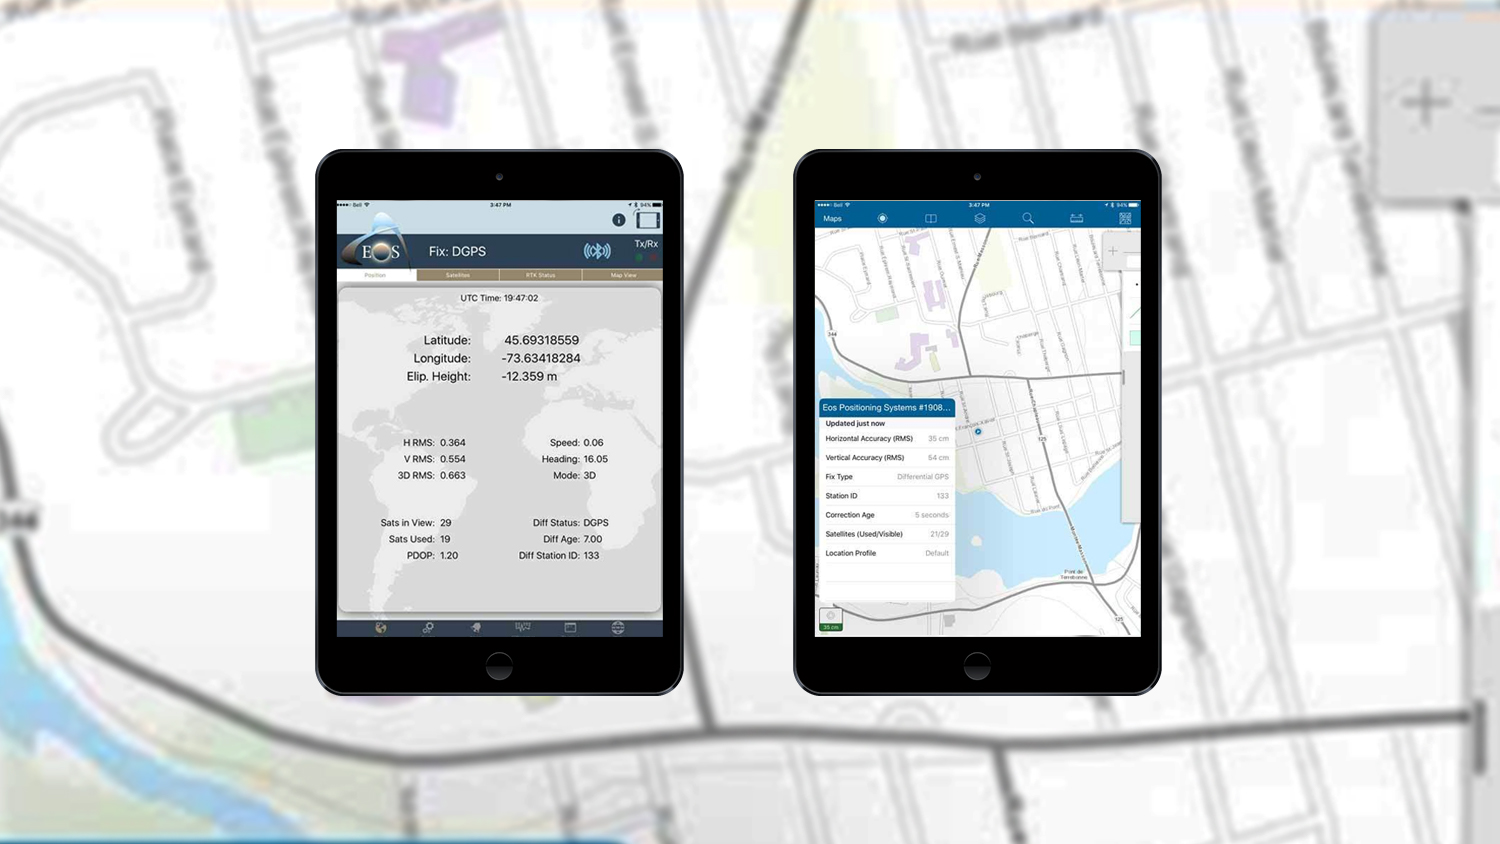 How to Know if Your Mobile Device GNSS Accuracy is Correct (Or Not) GIS GPS